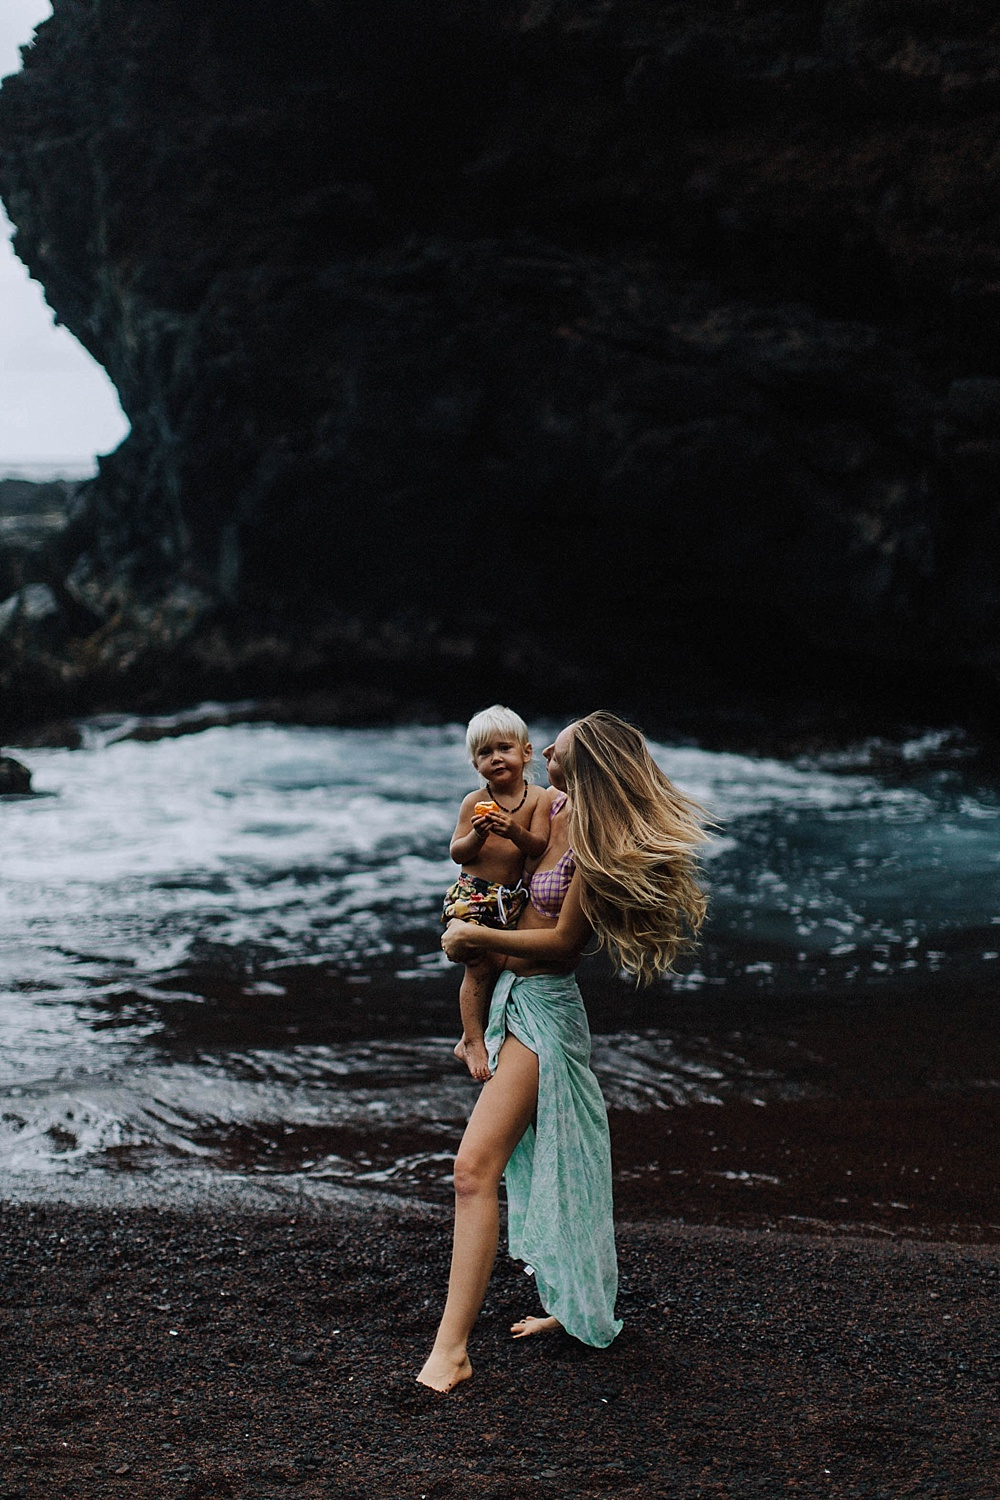 ellen fisher in hana, maui in hawaii with her vegan family during their photography session.